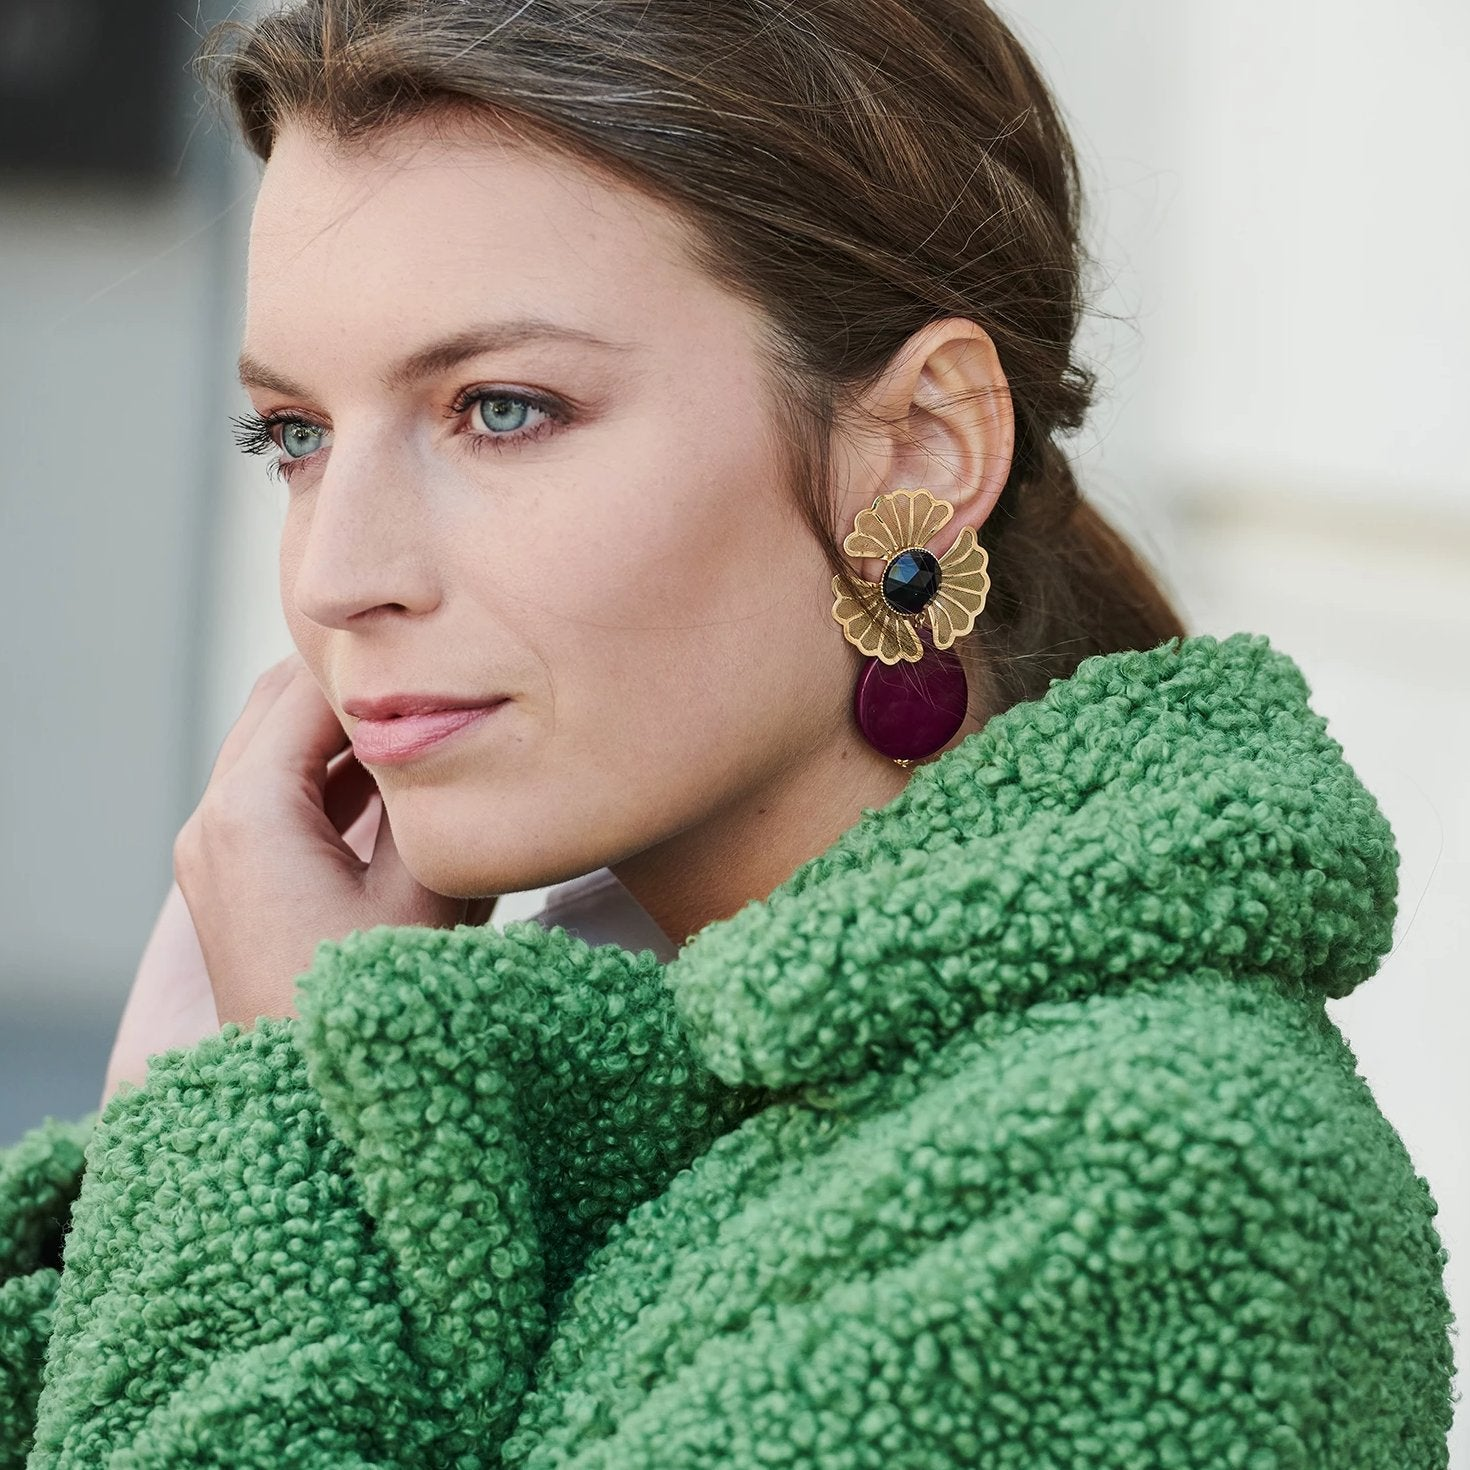 Mia statement aubergine earrings